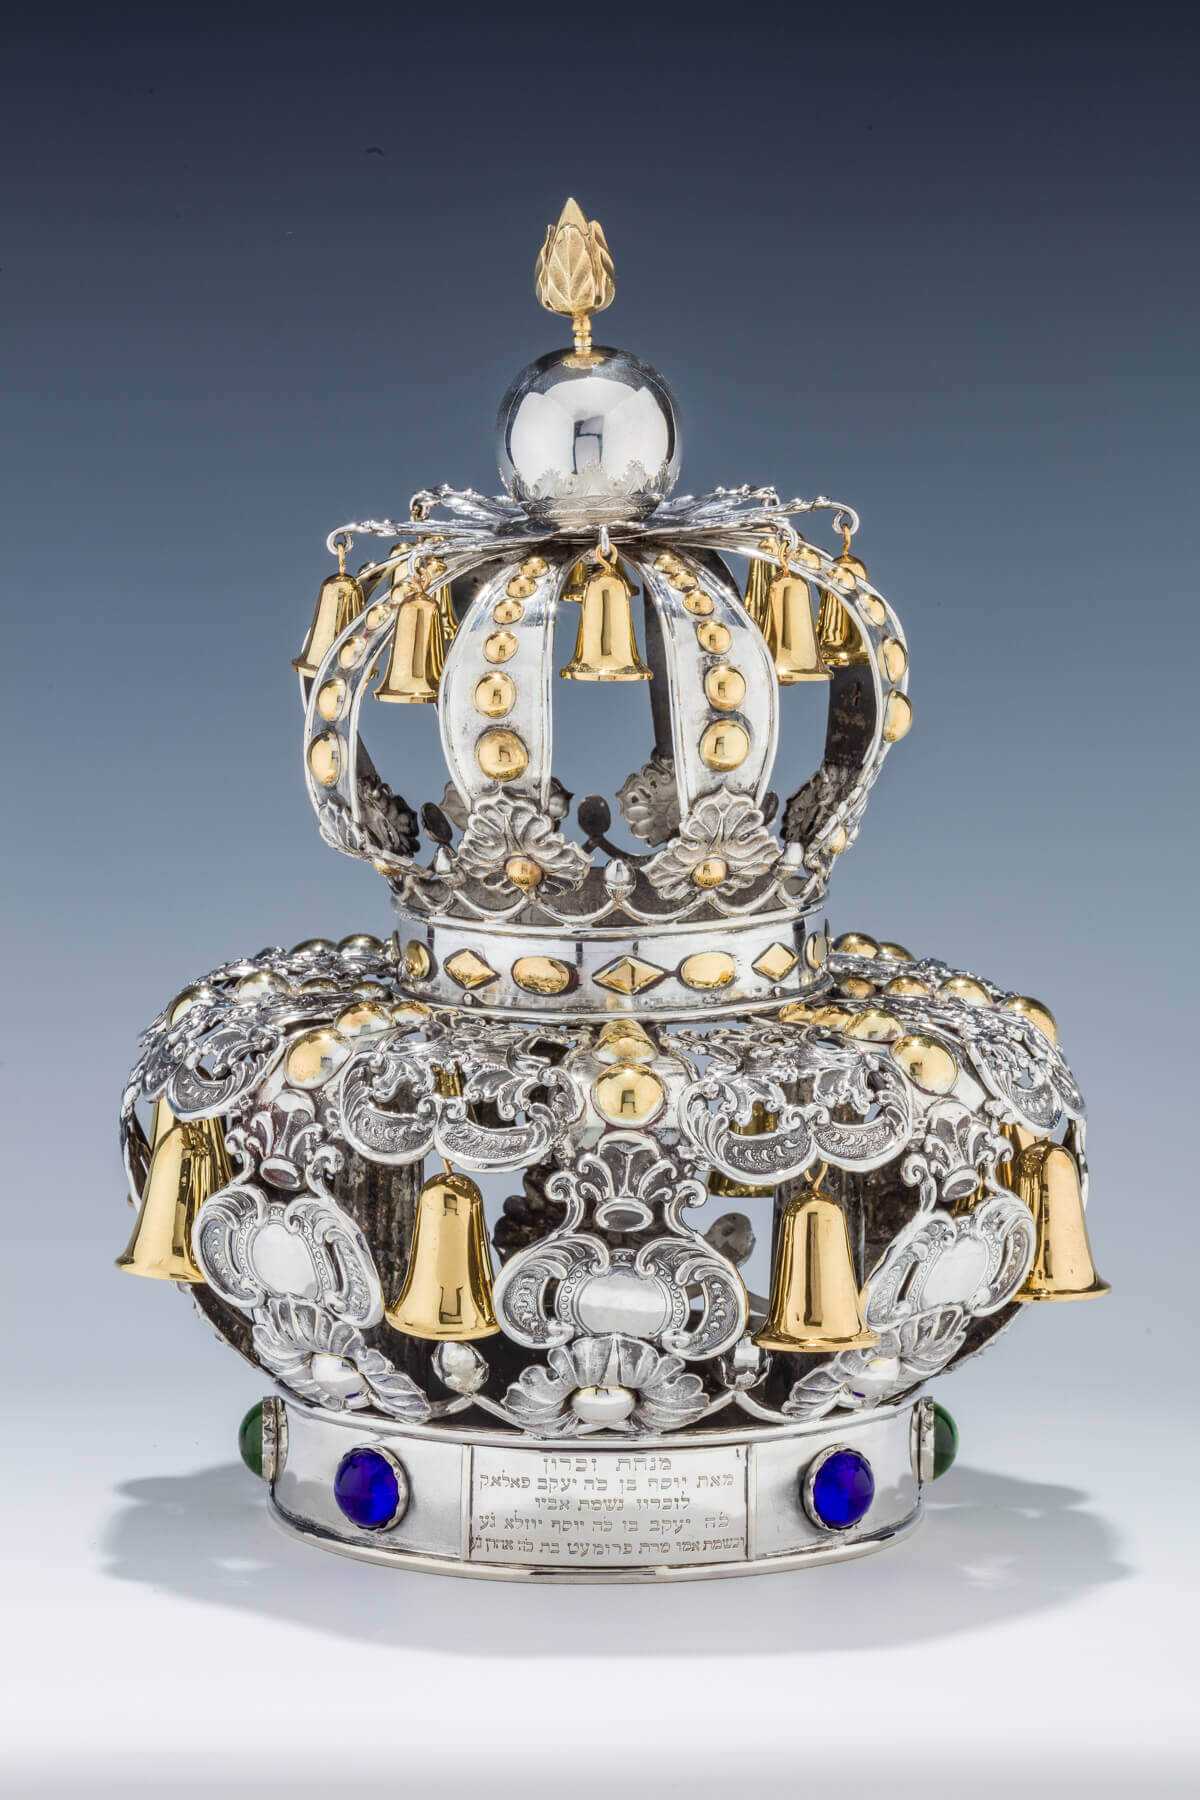 103. A LARGE SILVER TORAH CROWN BY JAC